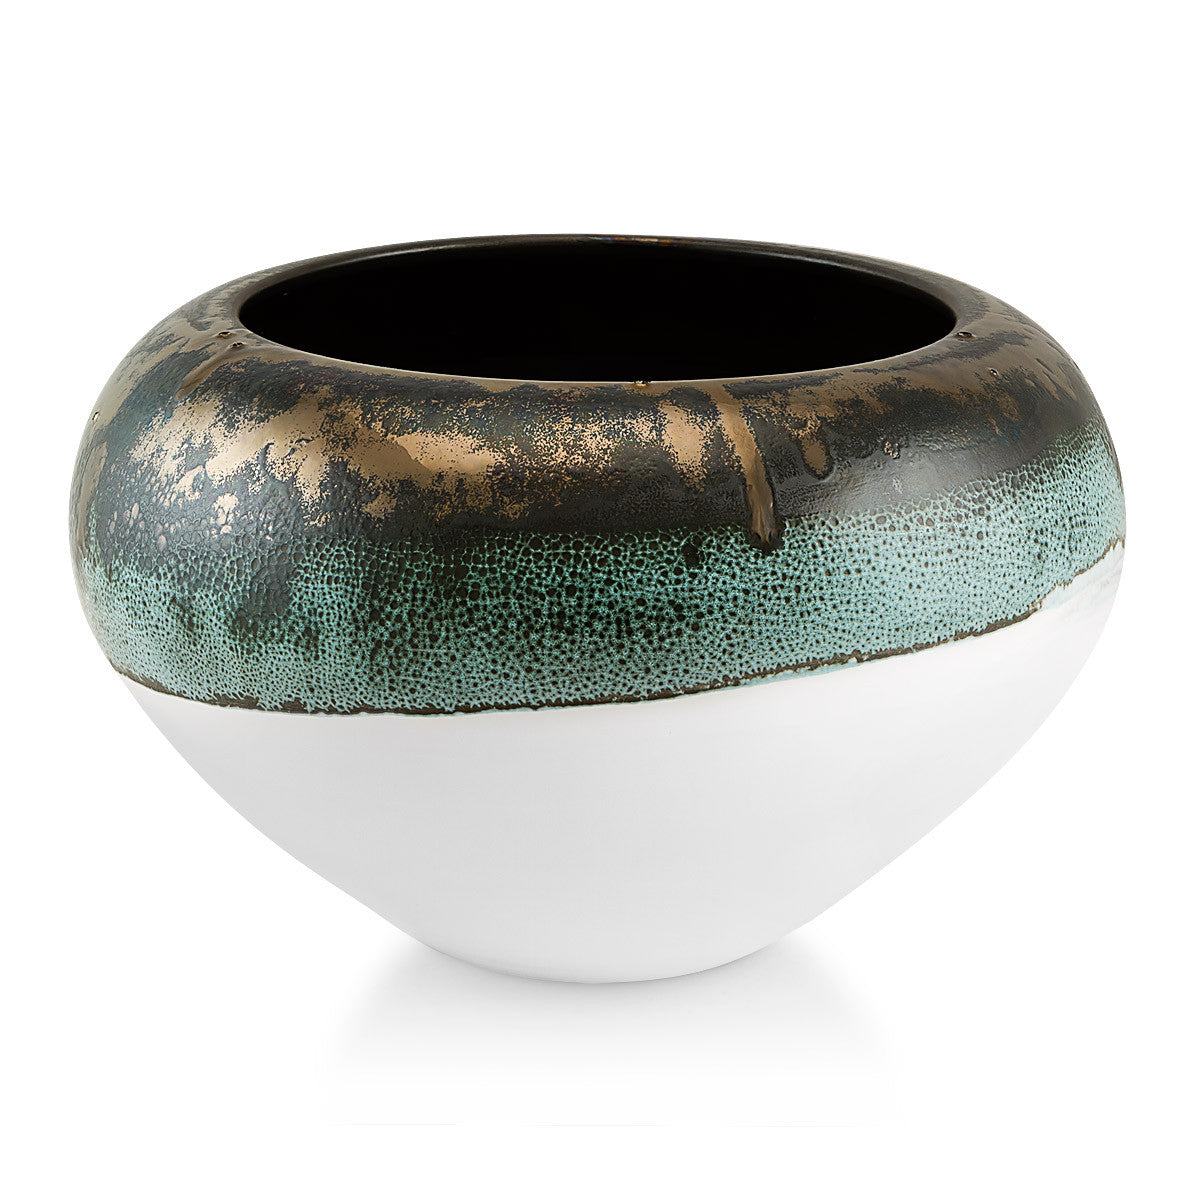 Cenote ceramic vase reactive glaze, ceramic supplies, modern design